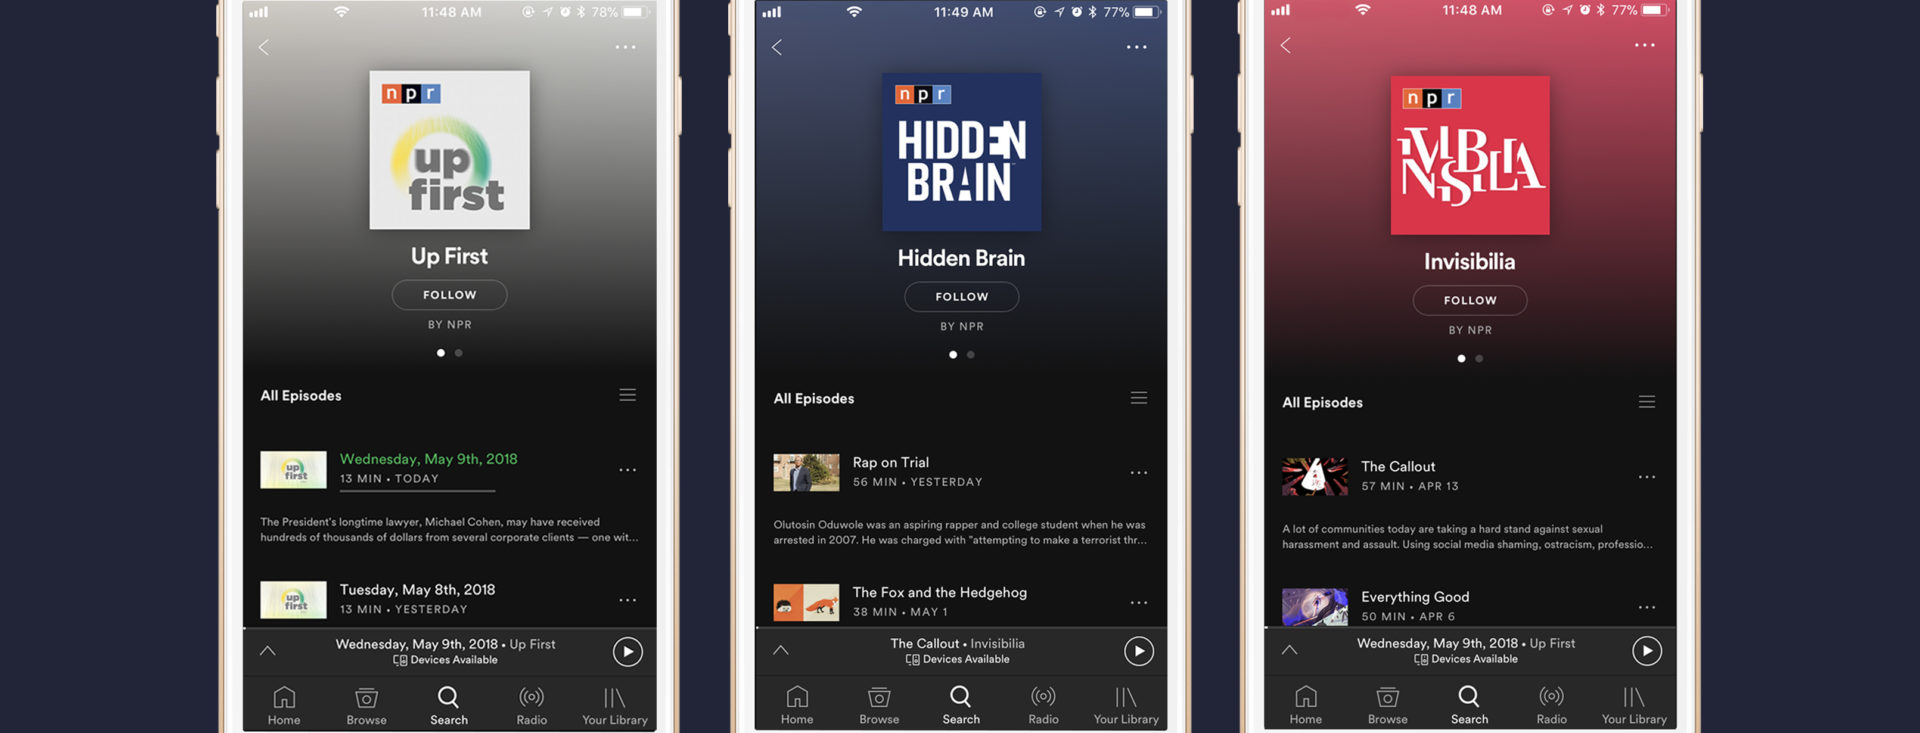 Spotify and NPR Team Up To Feed Your Podcast Addiction — Spotify 69b8c350325